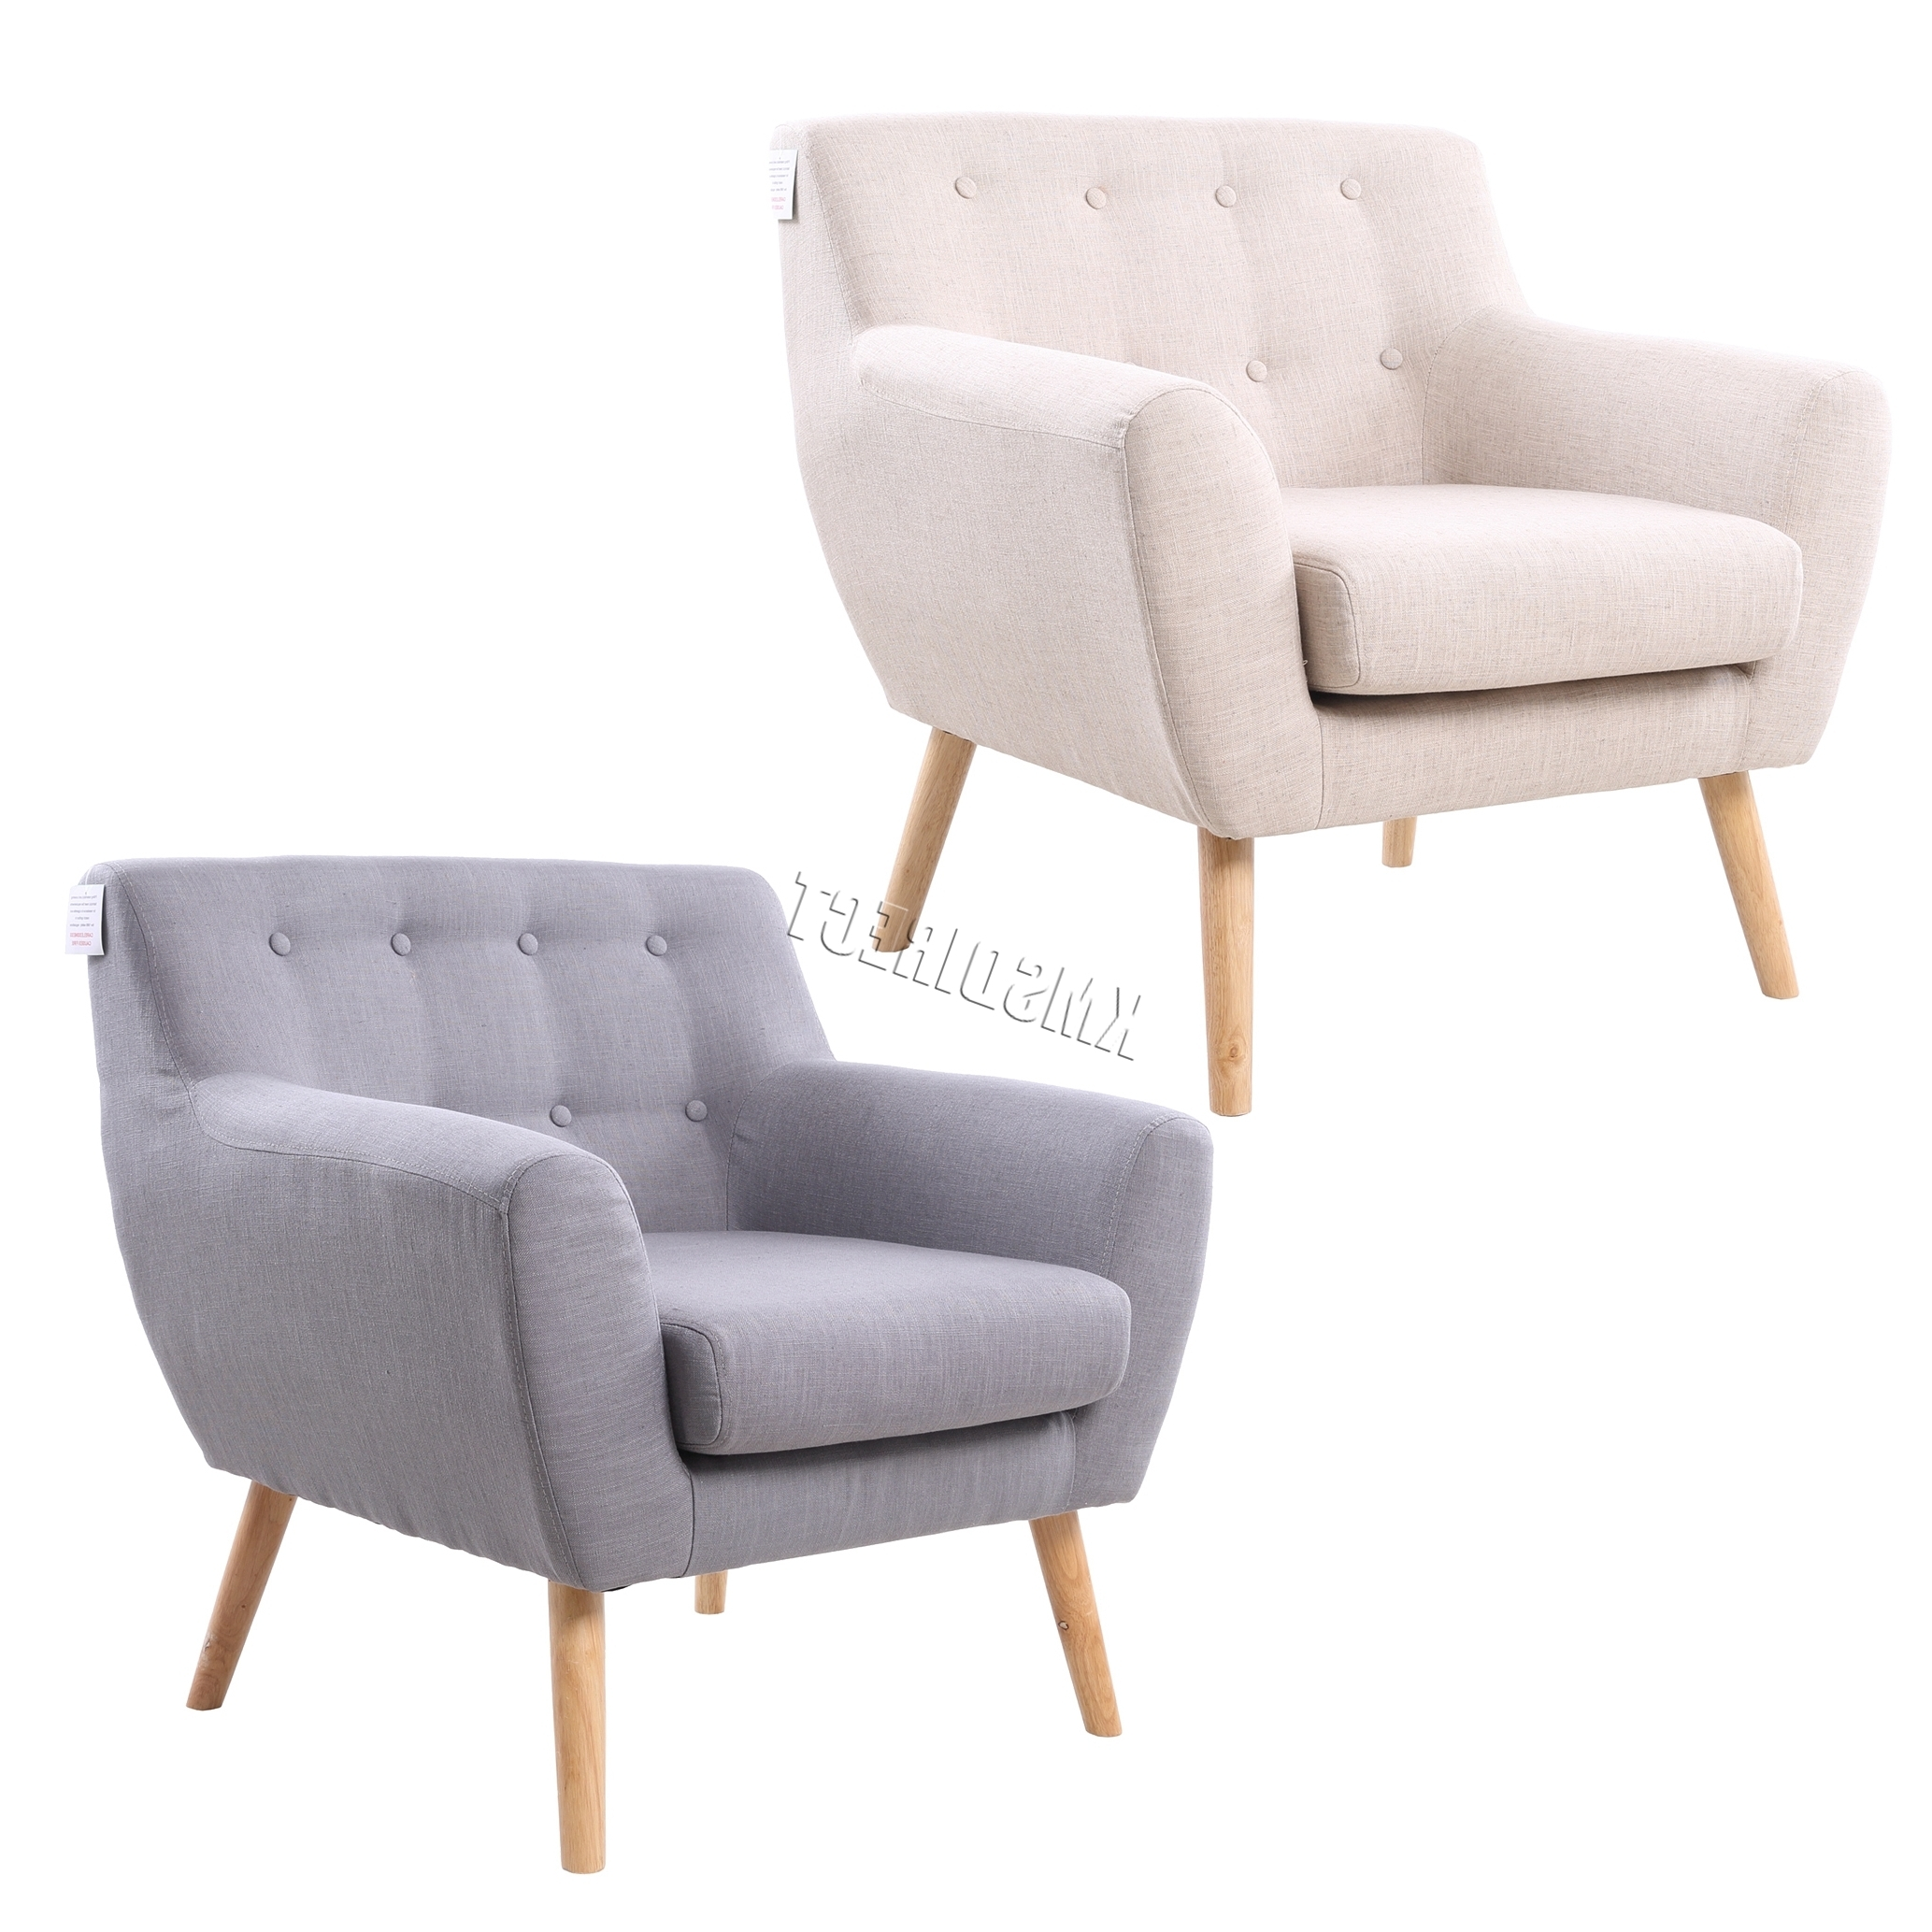 Single Sofa Chairs Pertaining To Most Recent Wonderful Single Seater Sofa With Best Single Seat Sofa 11 About (View 14 of 20)